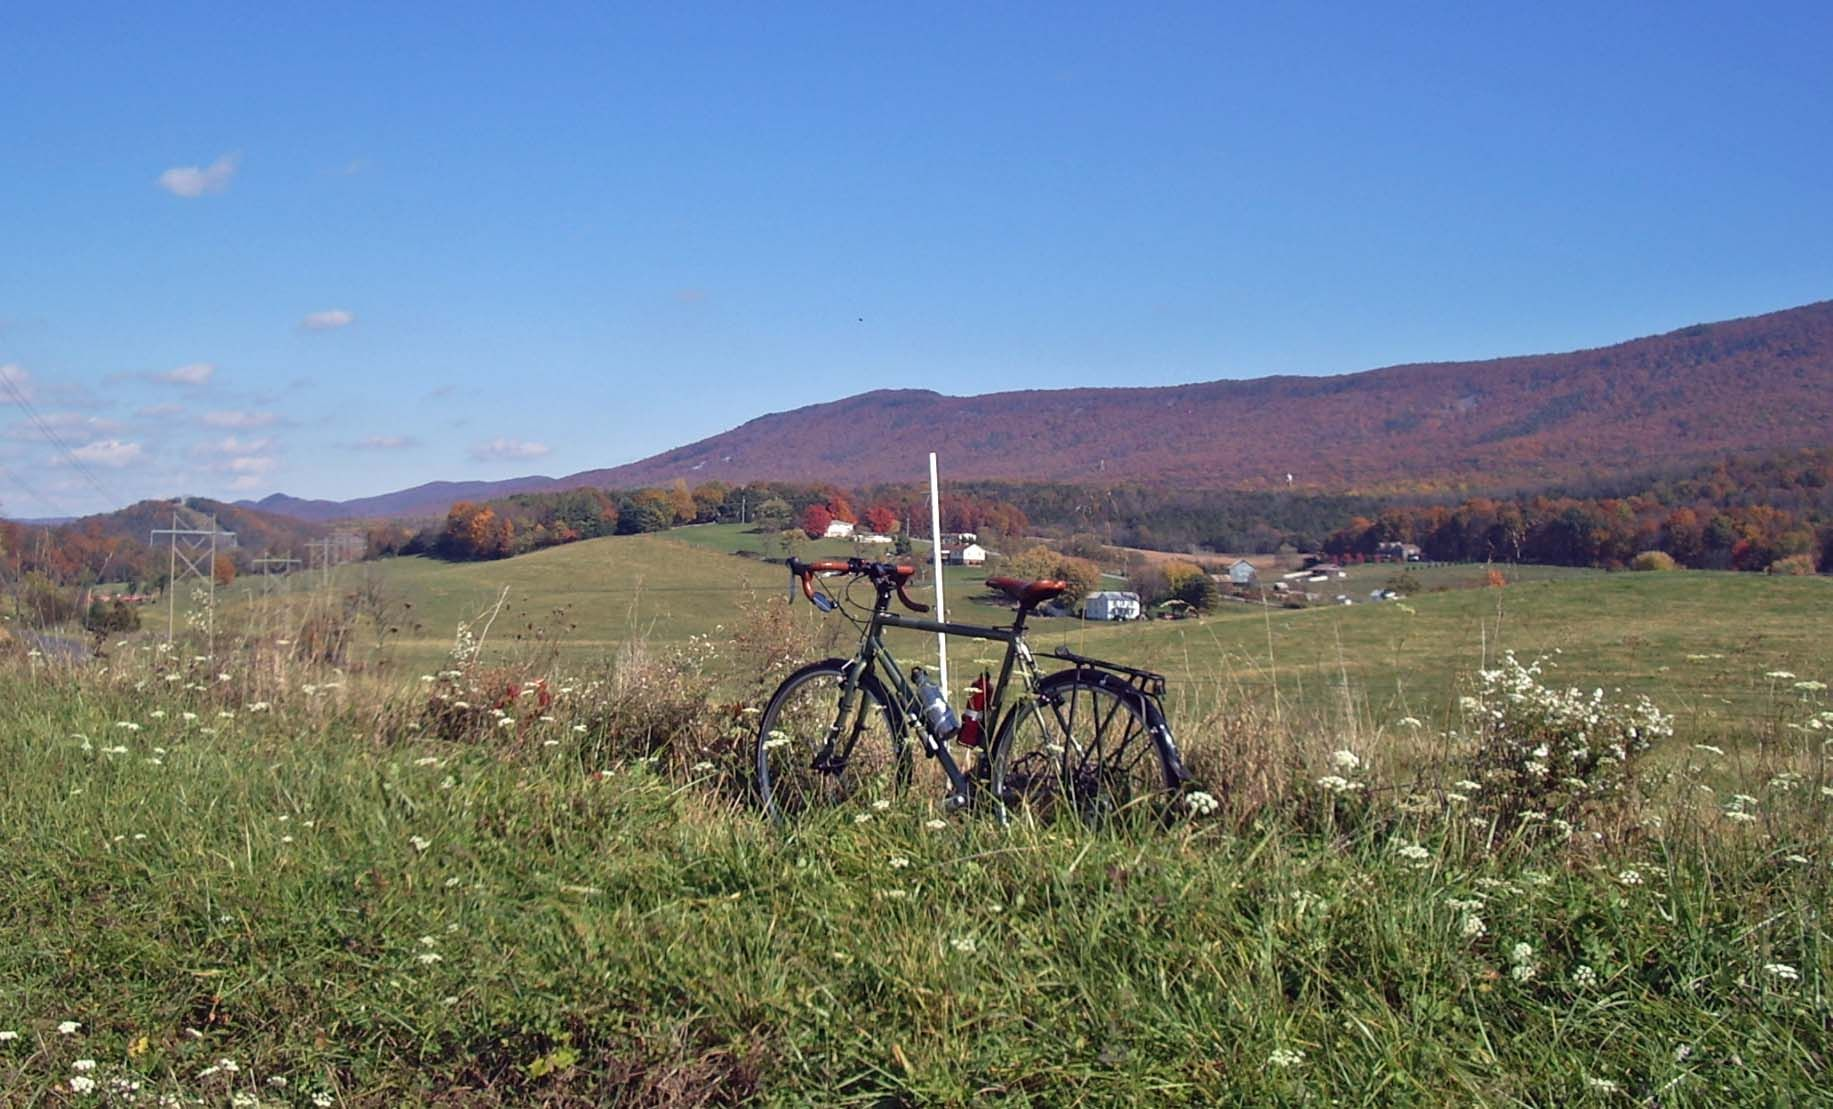 Weekend quiet rides along the south Massanutten Mt. range in Virginia. These old mountains slowly teach me about the way it is.